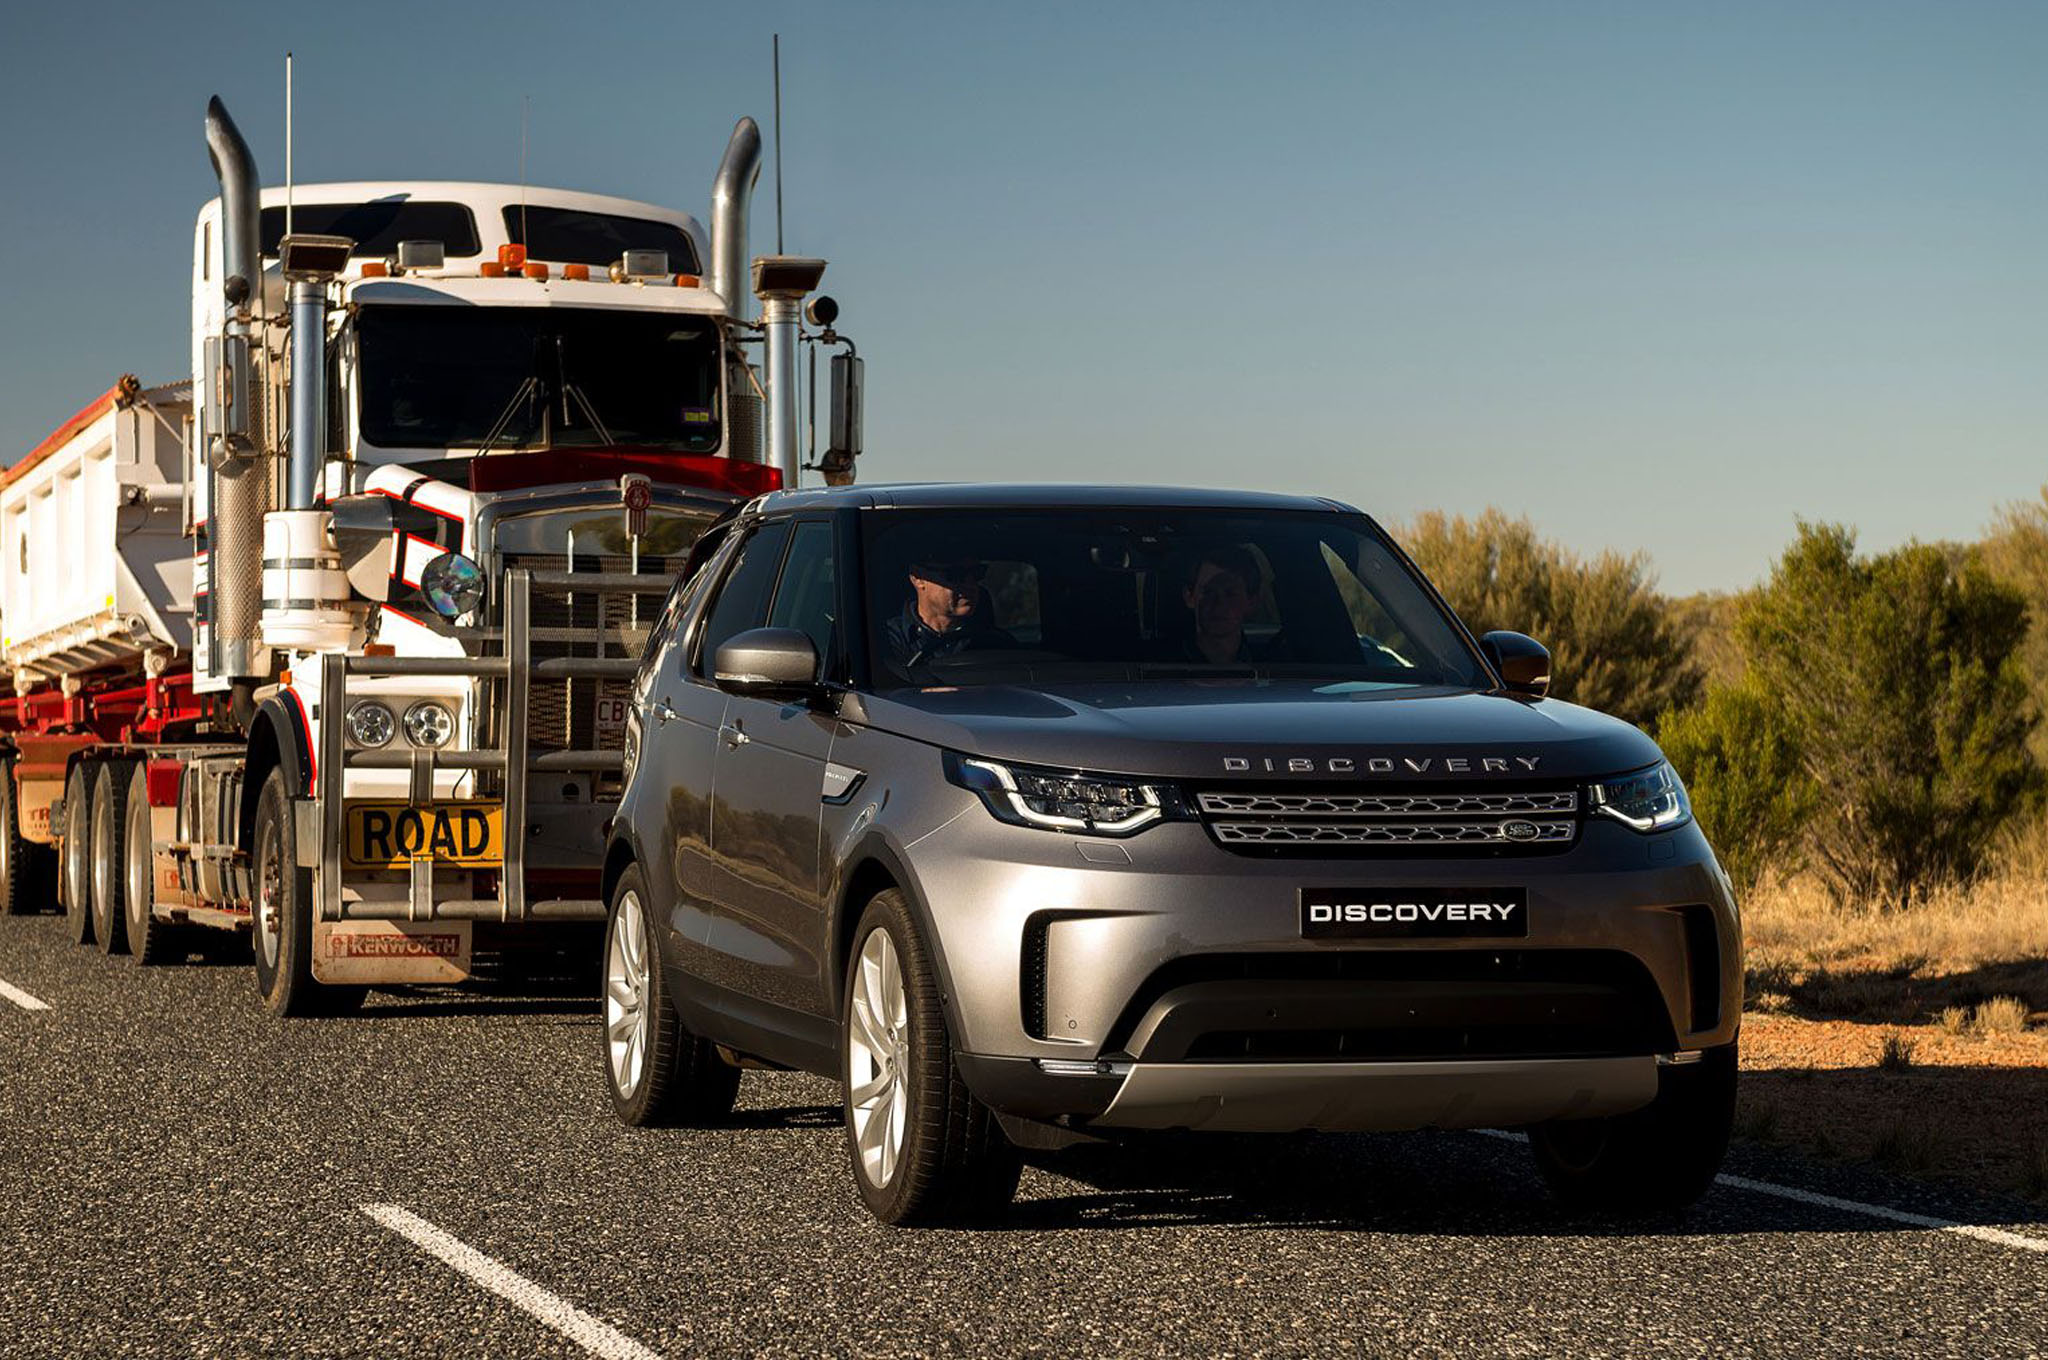 2018-land-rover-discovery-td6-road-train-front-view-in-motion.jpg